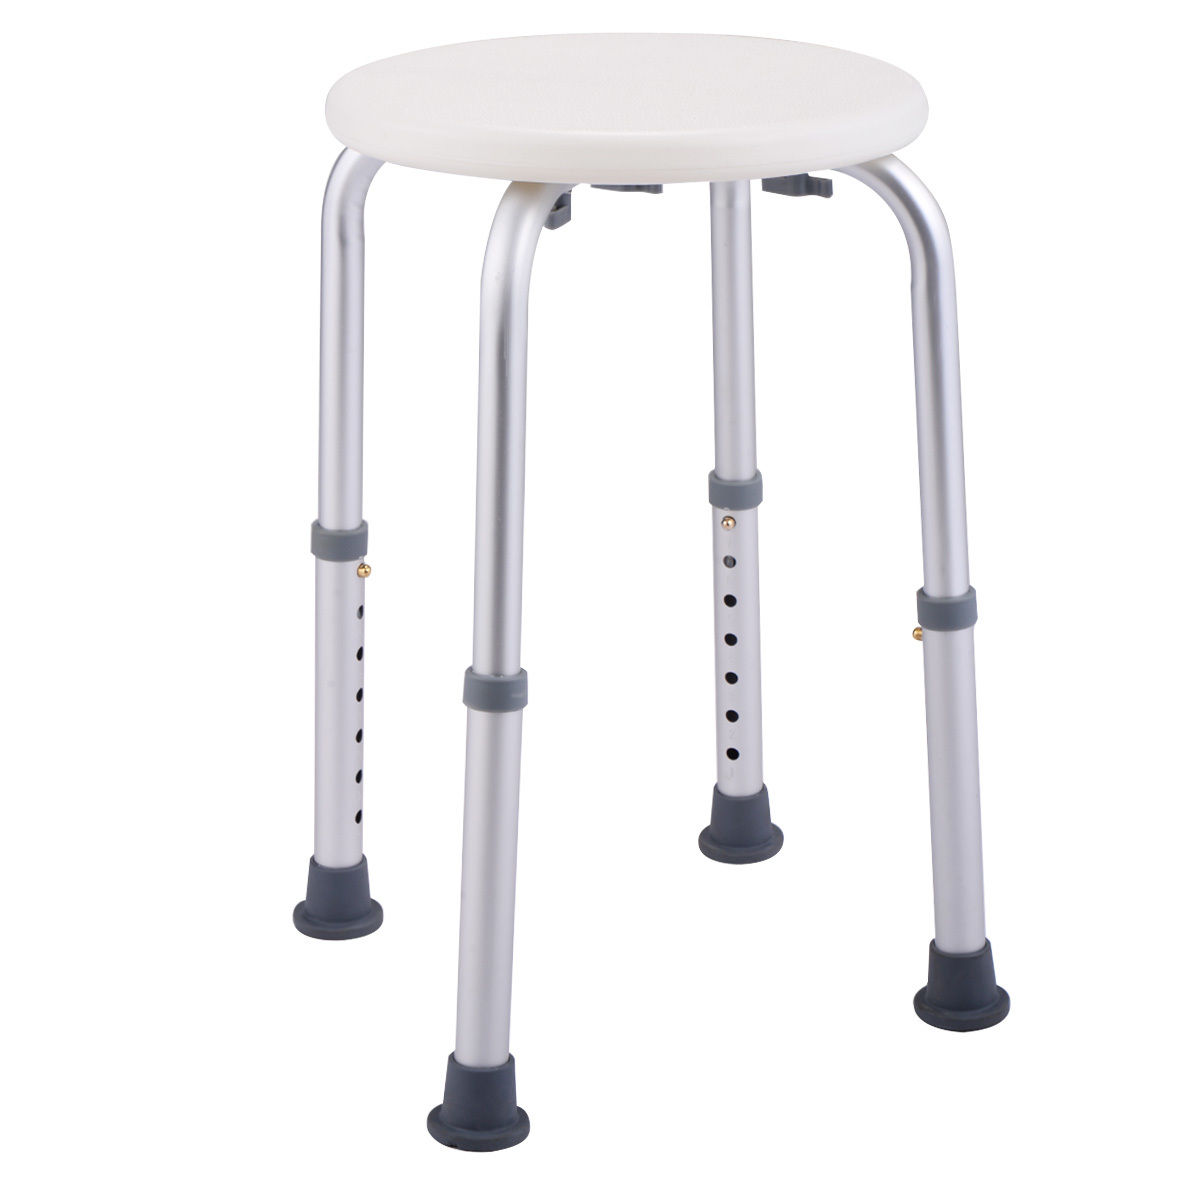 shower chairs costway 7 height adjustable bath shower chair medical seat stool bath tub white